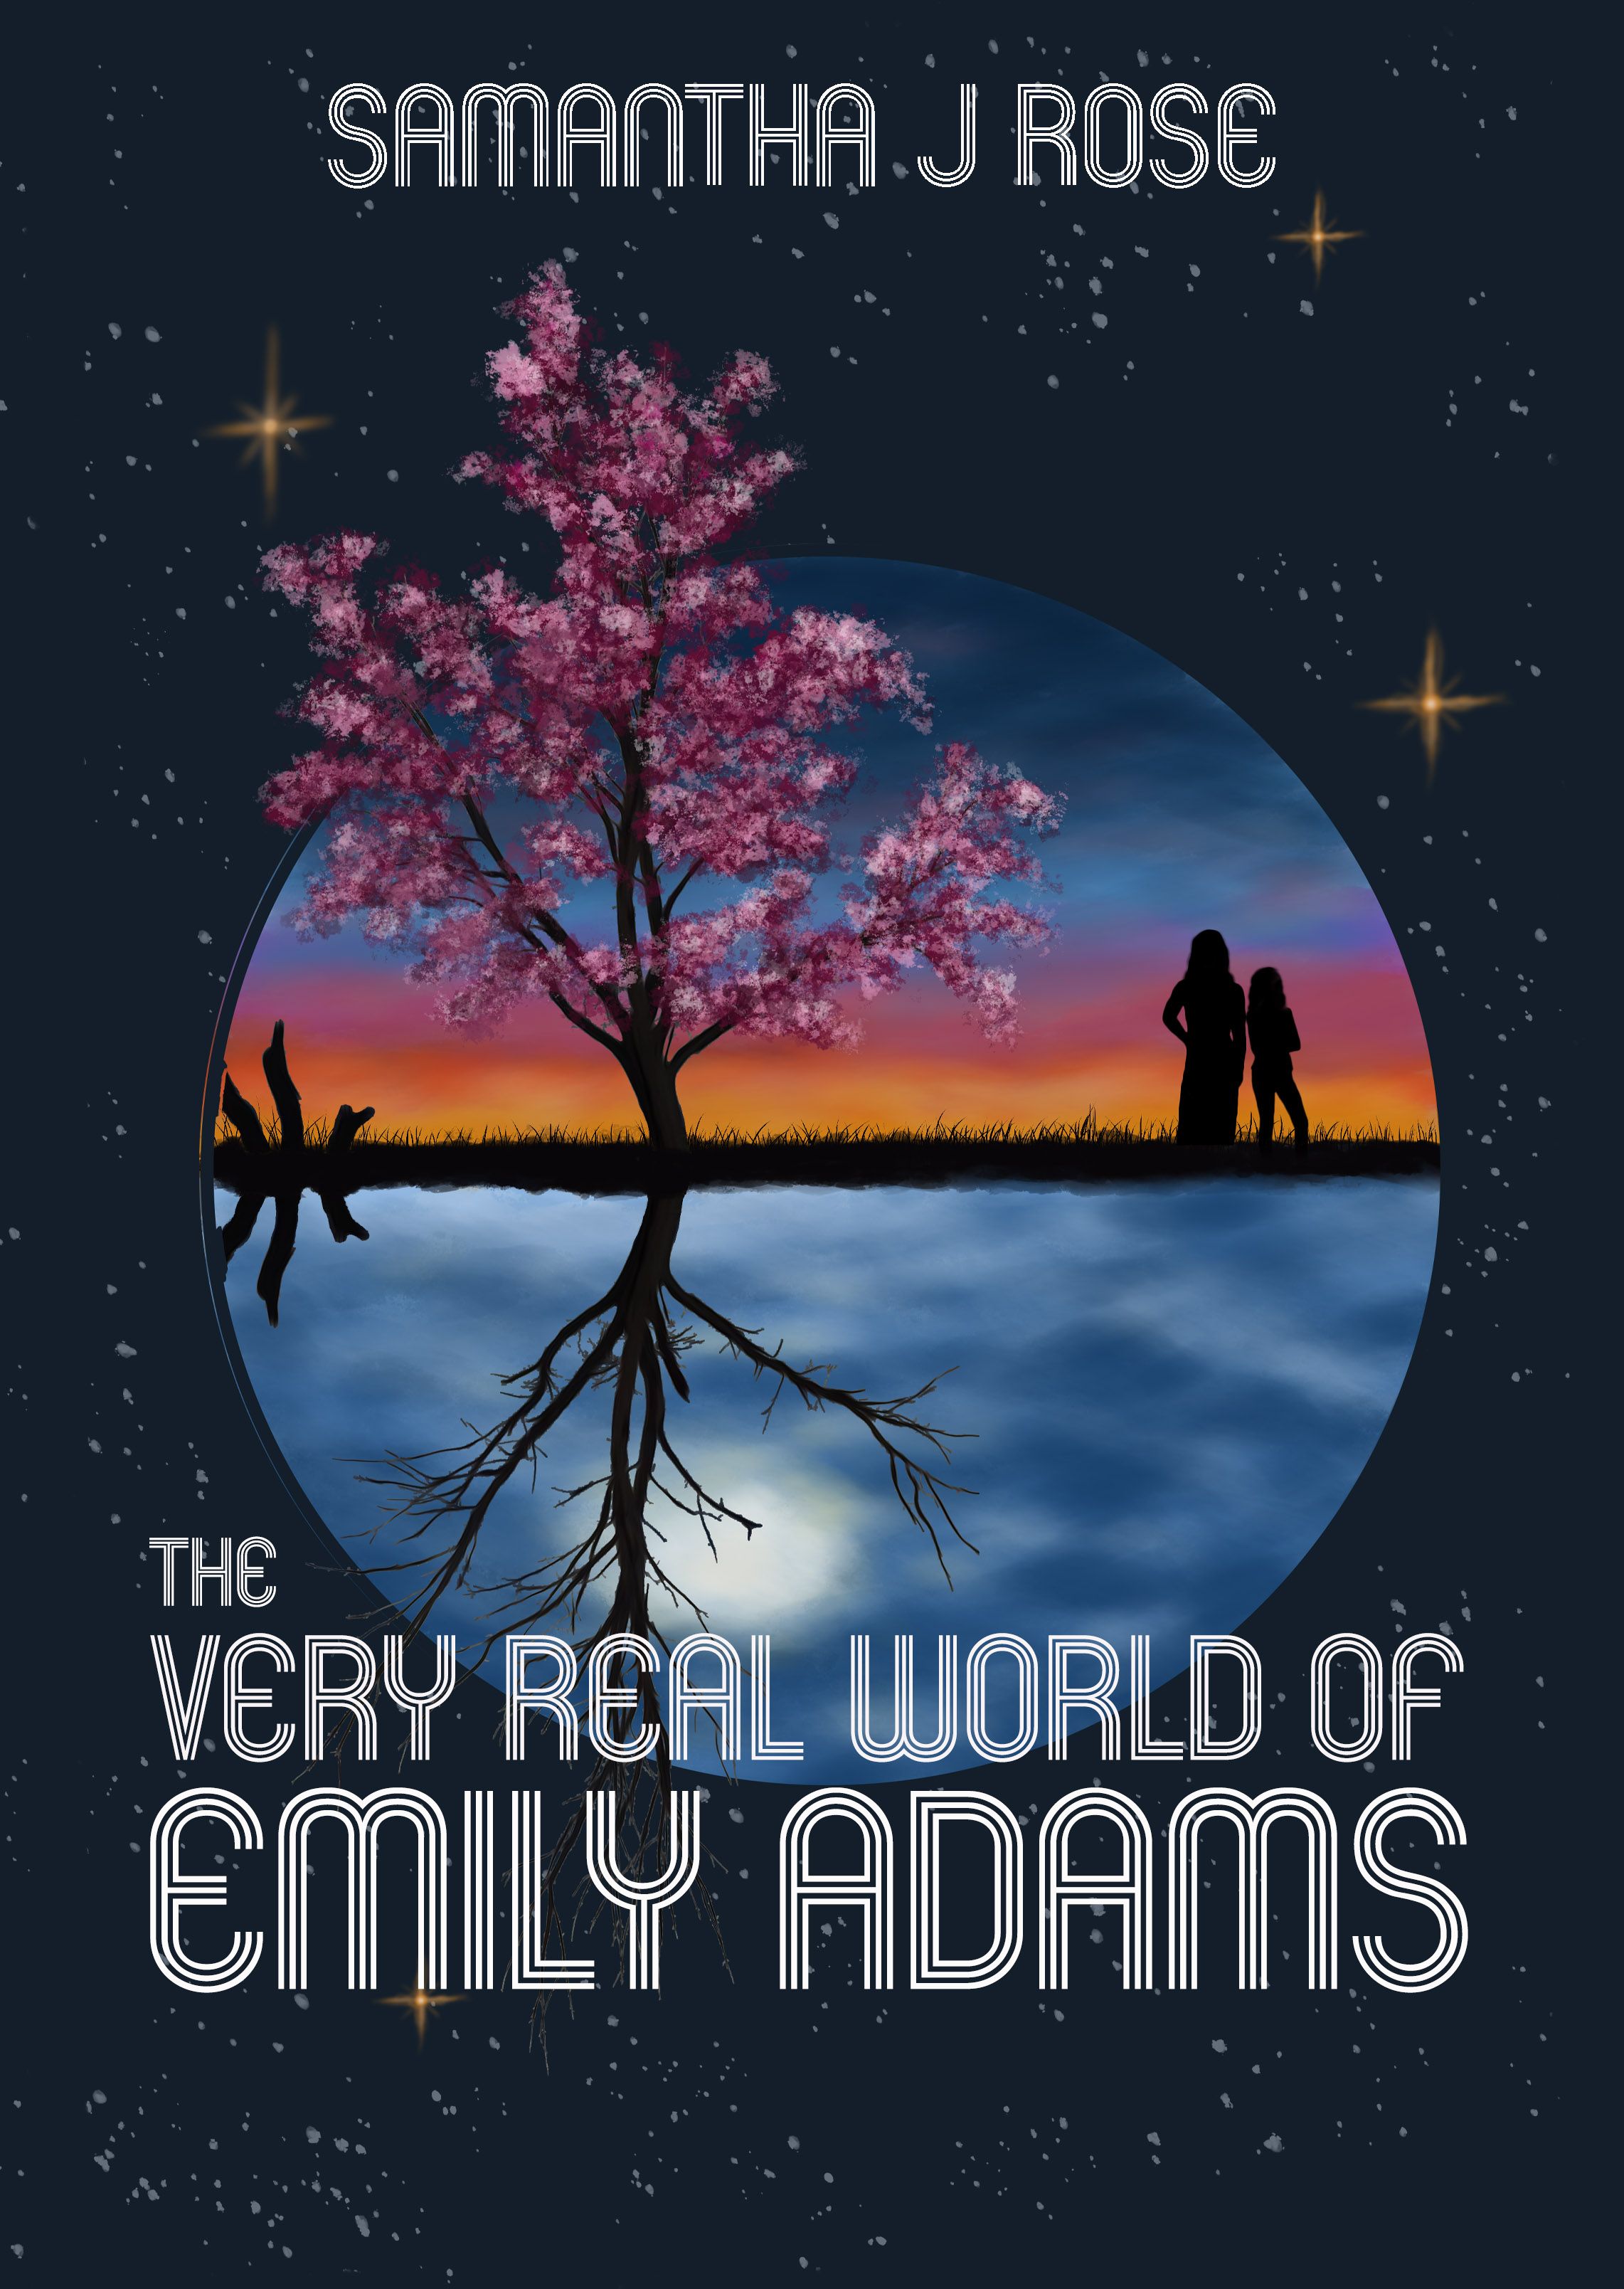 The Very Real World of Emily Adams by Samantha J. Rose